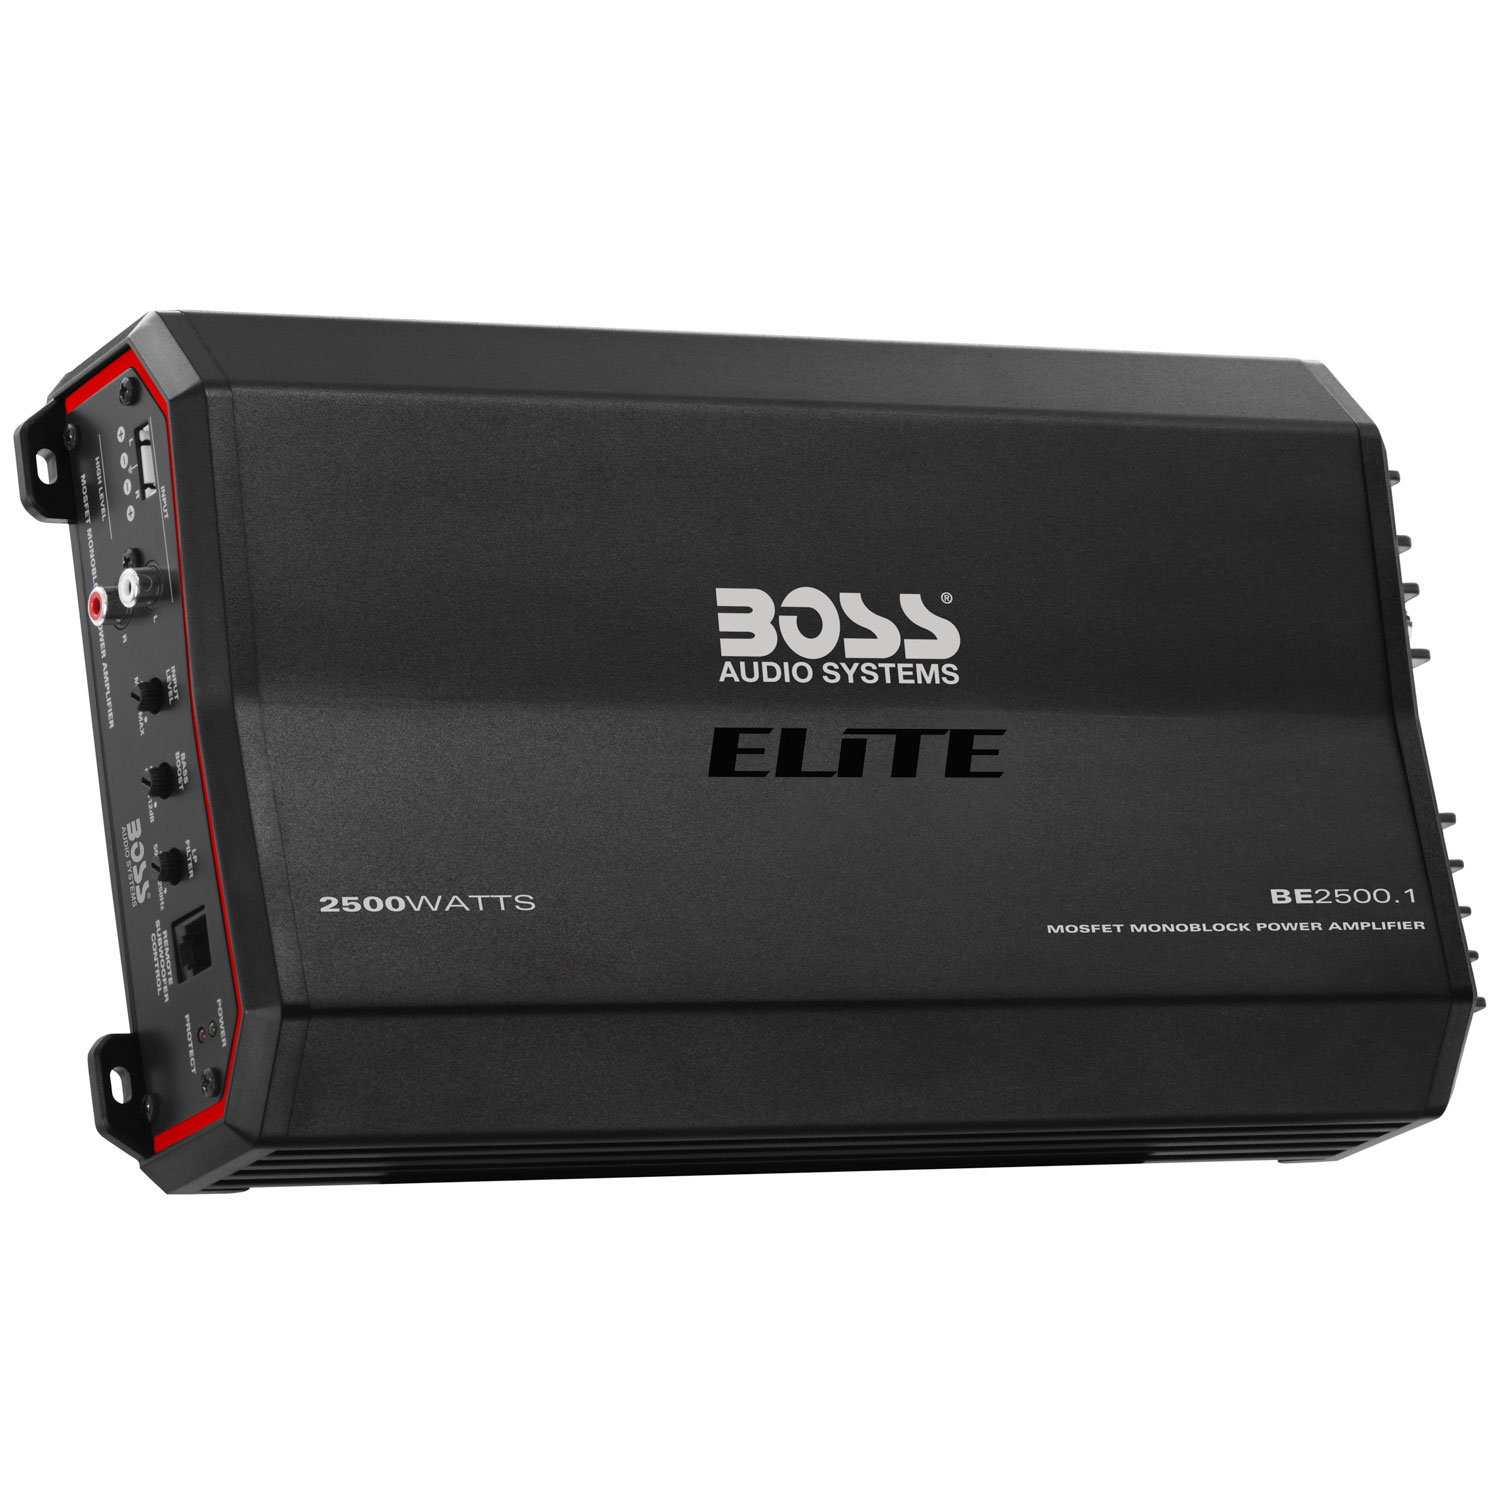 Boss Audio Systems 2500-Watt Class A/B Amplifier with Remote Subwoofer Control